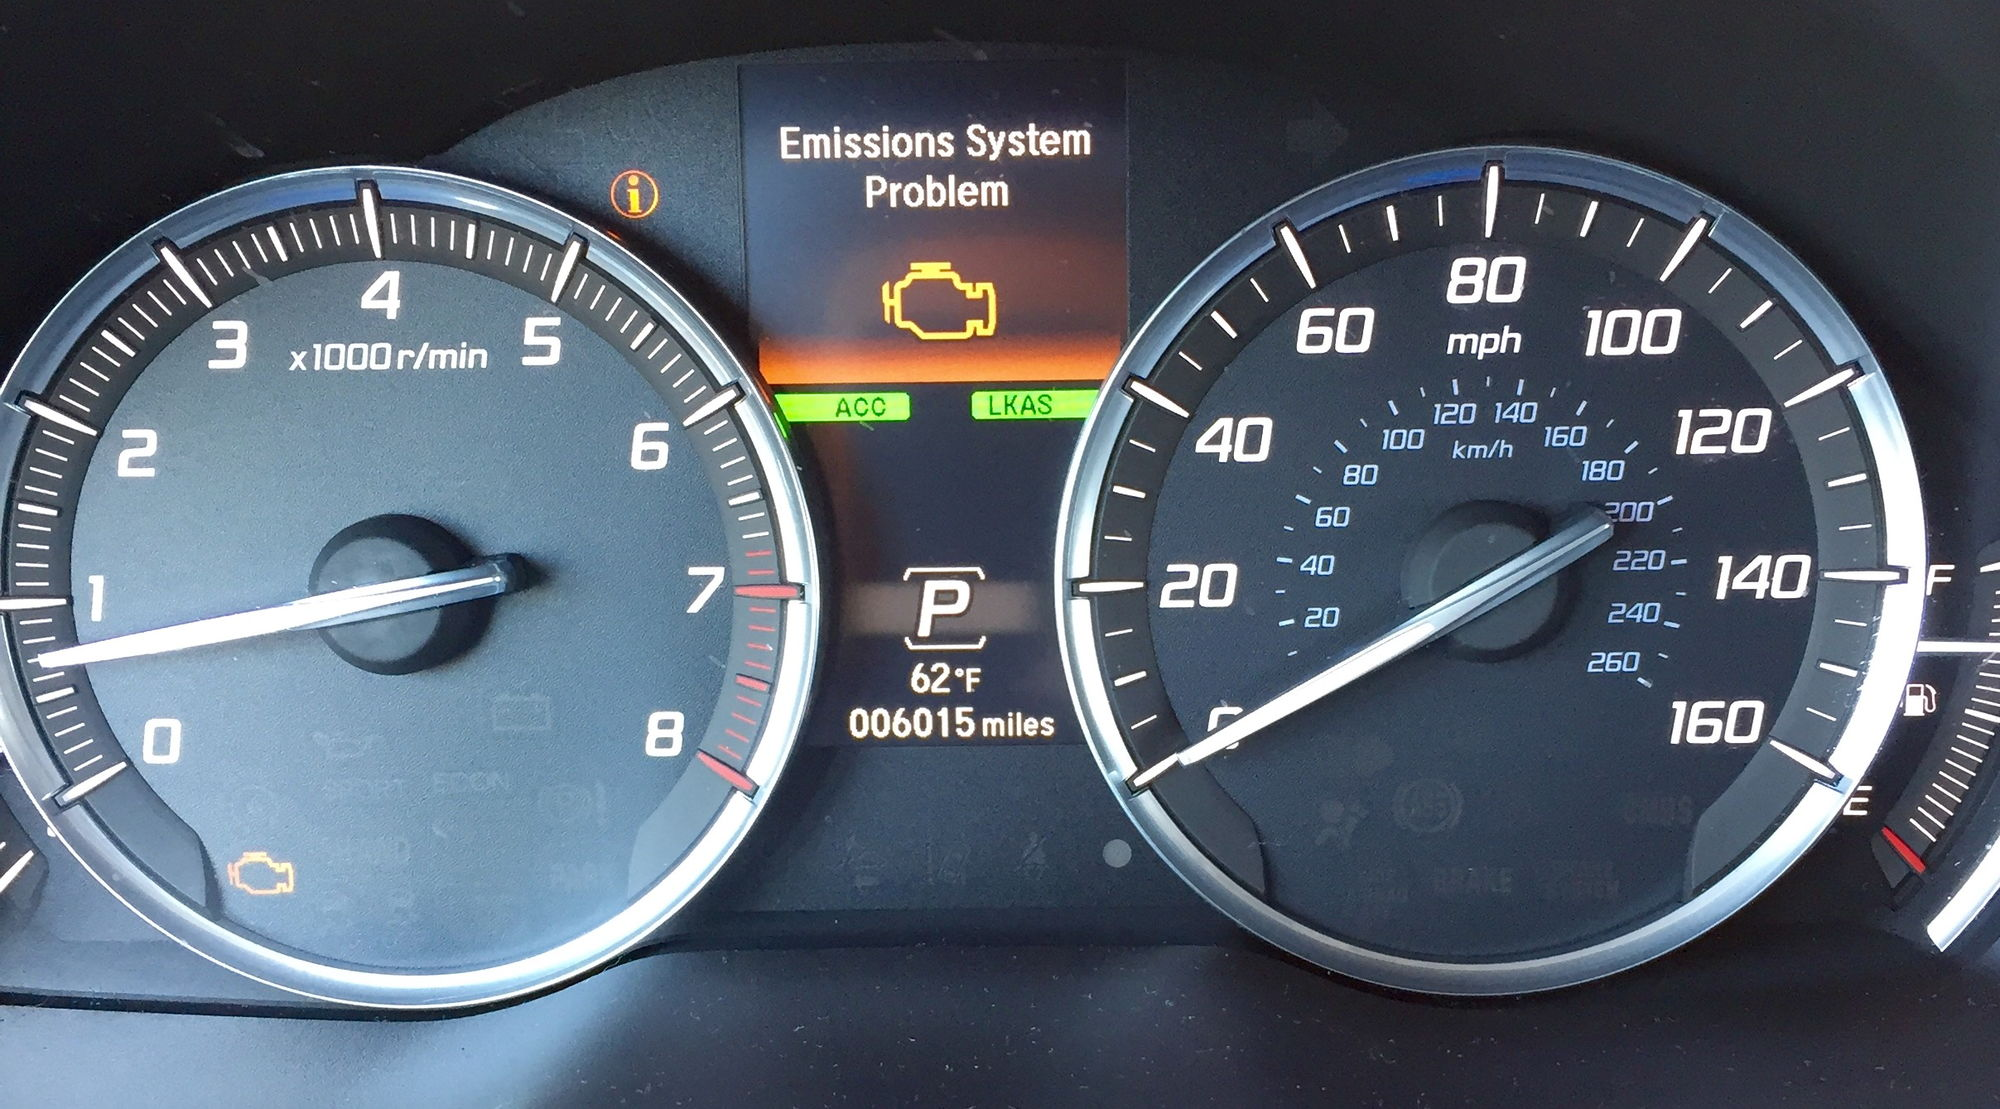 emissions system problem in 2016 mdx - acurazine